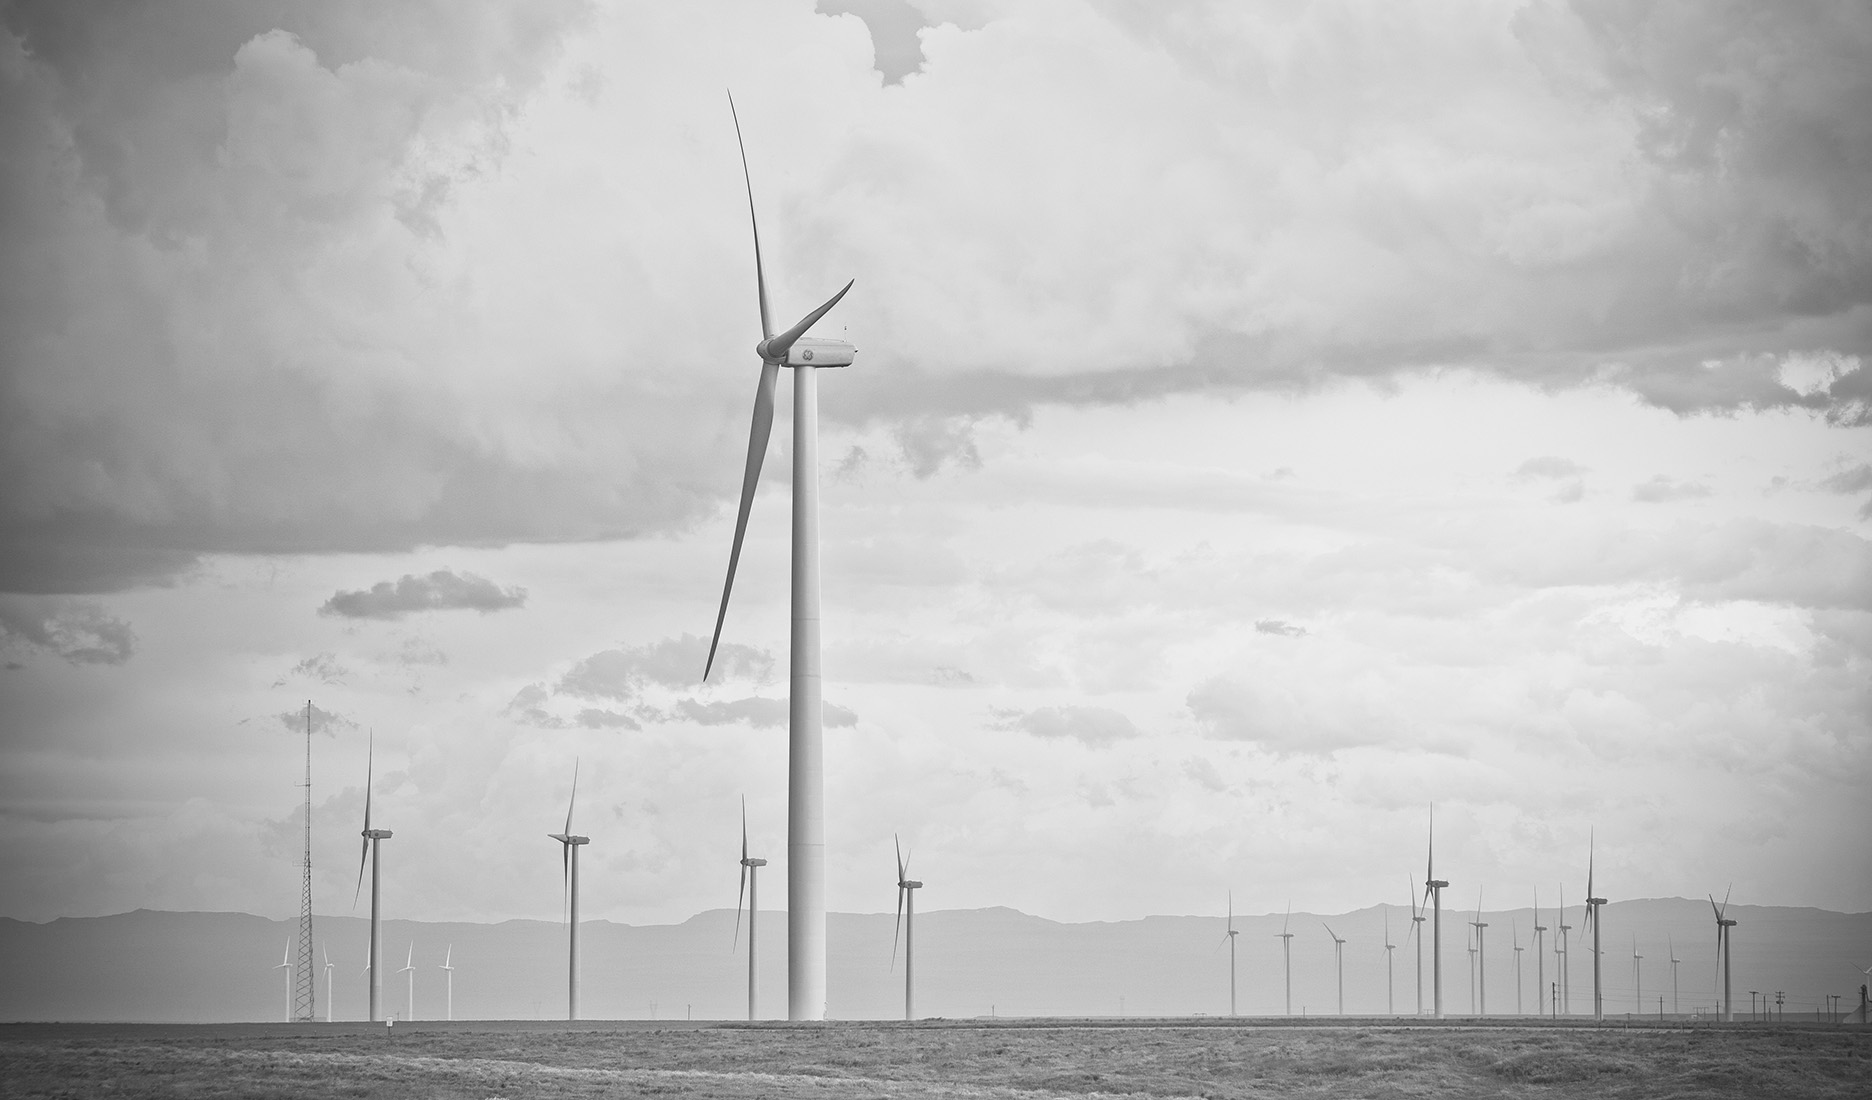 Wind_turbine_Idaho_photography.jpg